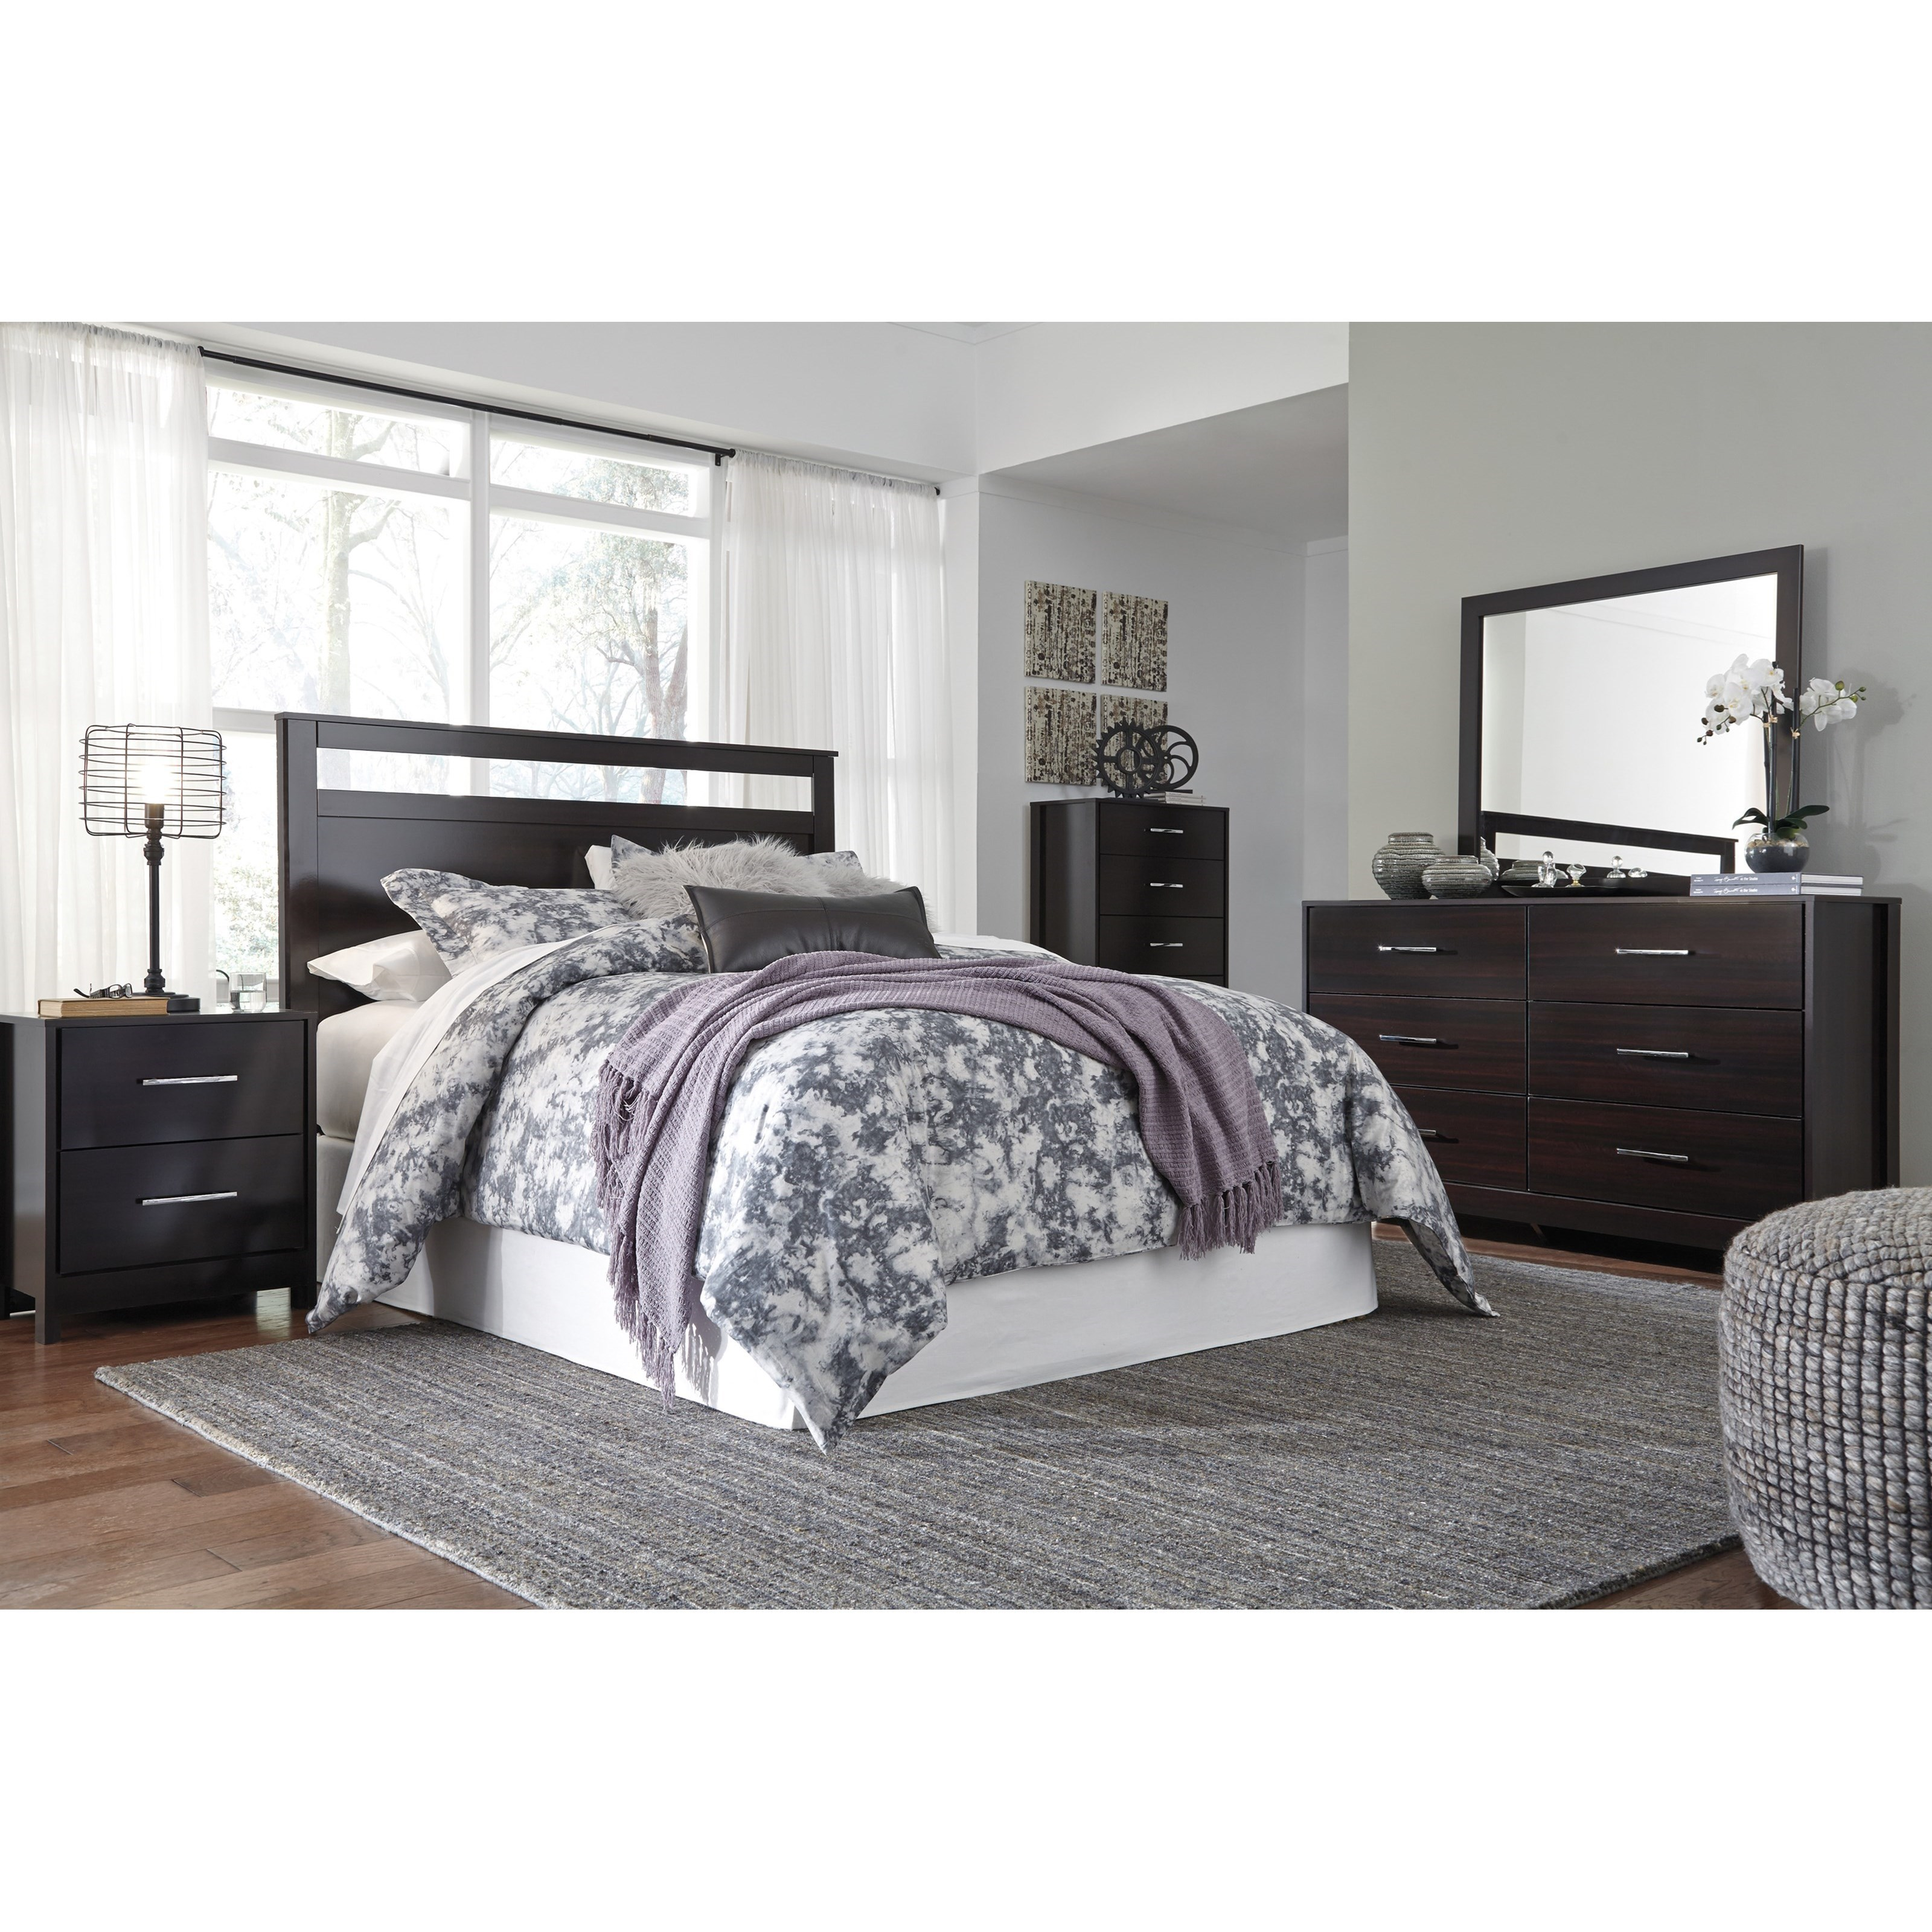 Signature Design by Ashley Furniture Agella King/Cal King Bedroom Group - Item Number: B072 K Bedroom Group 2